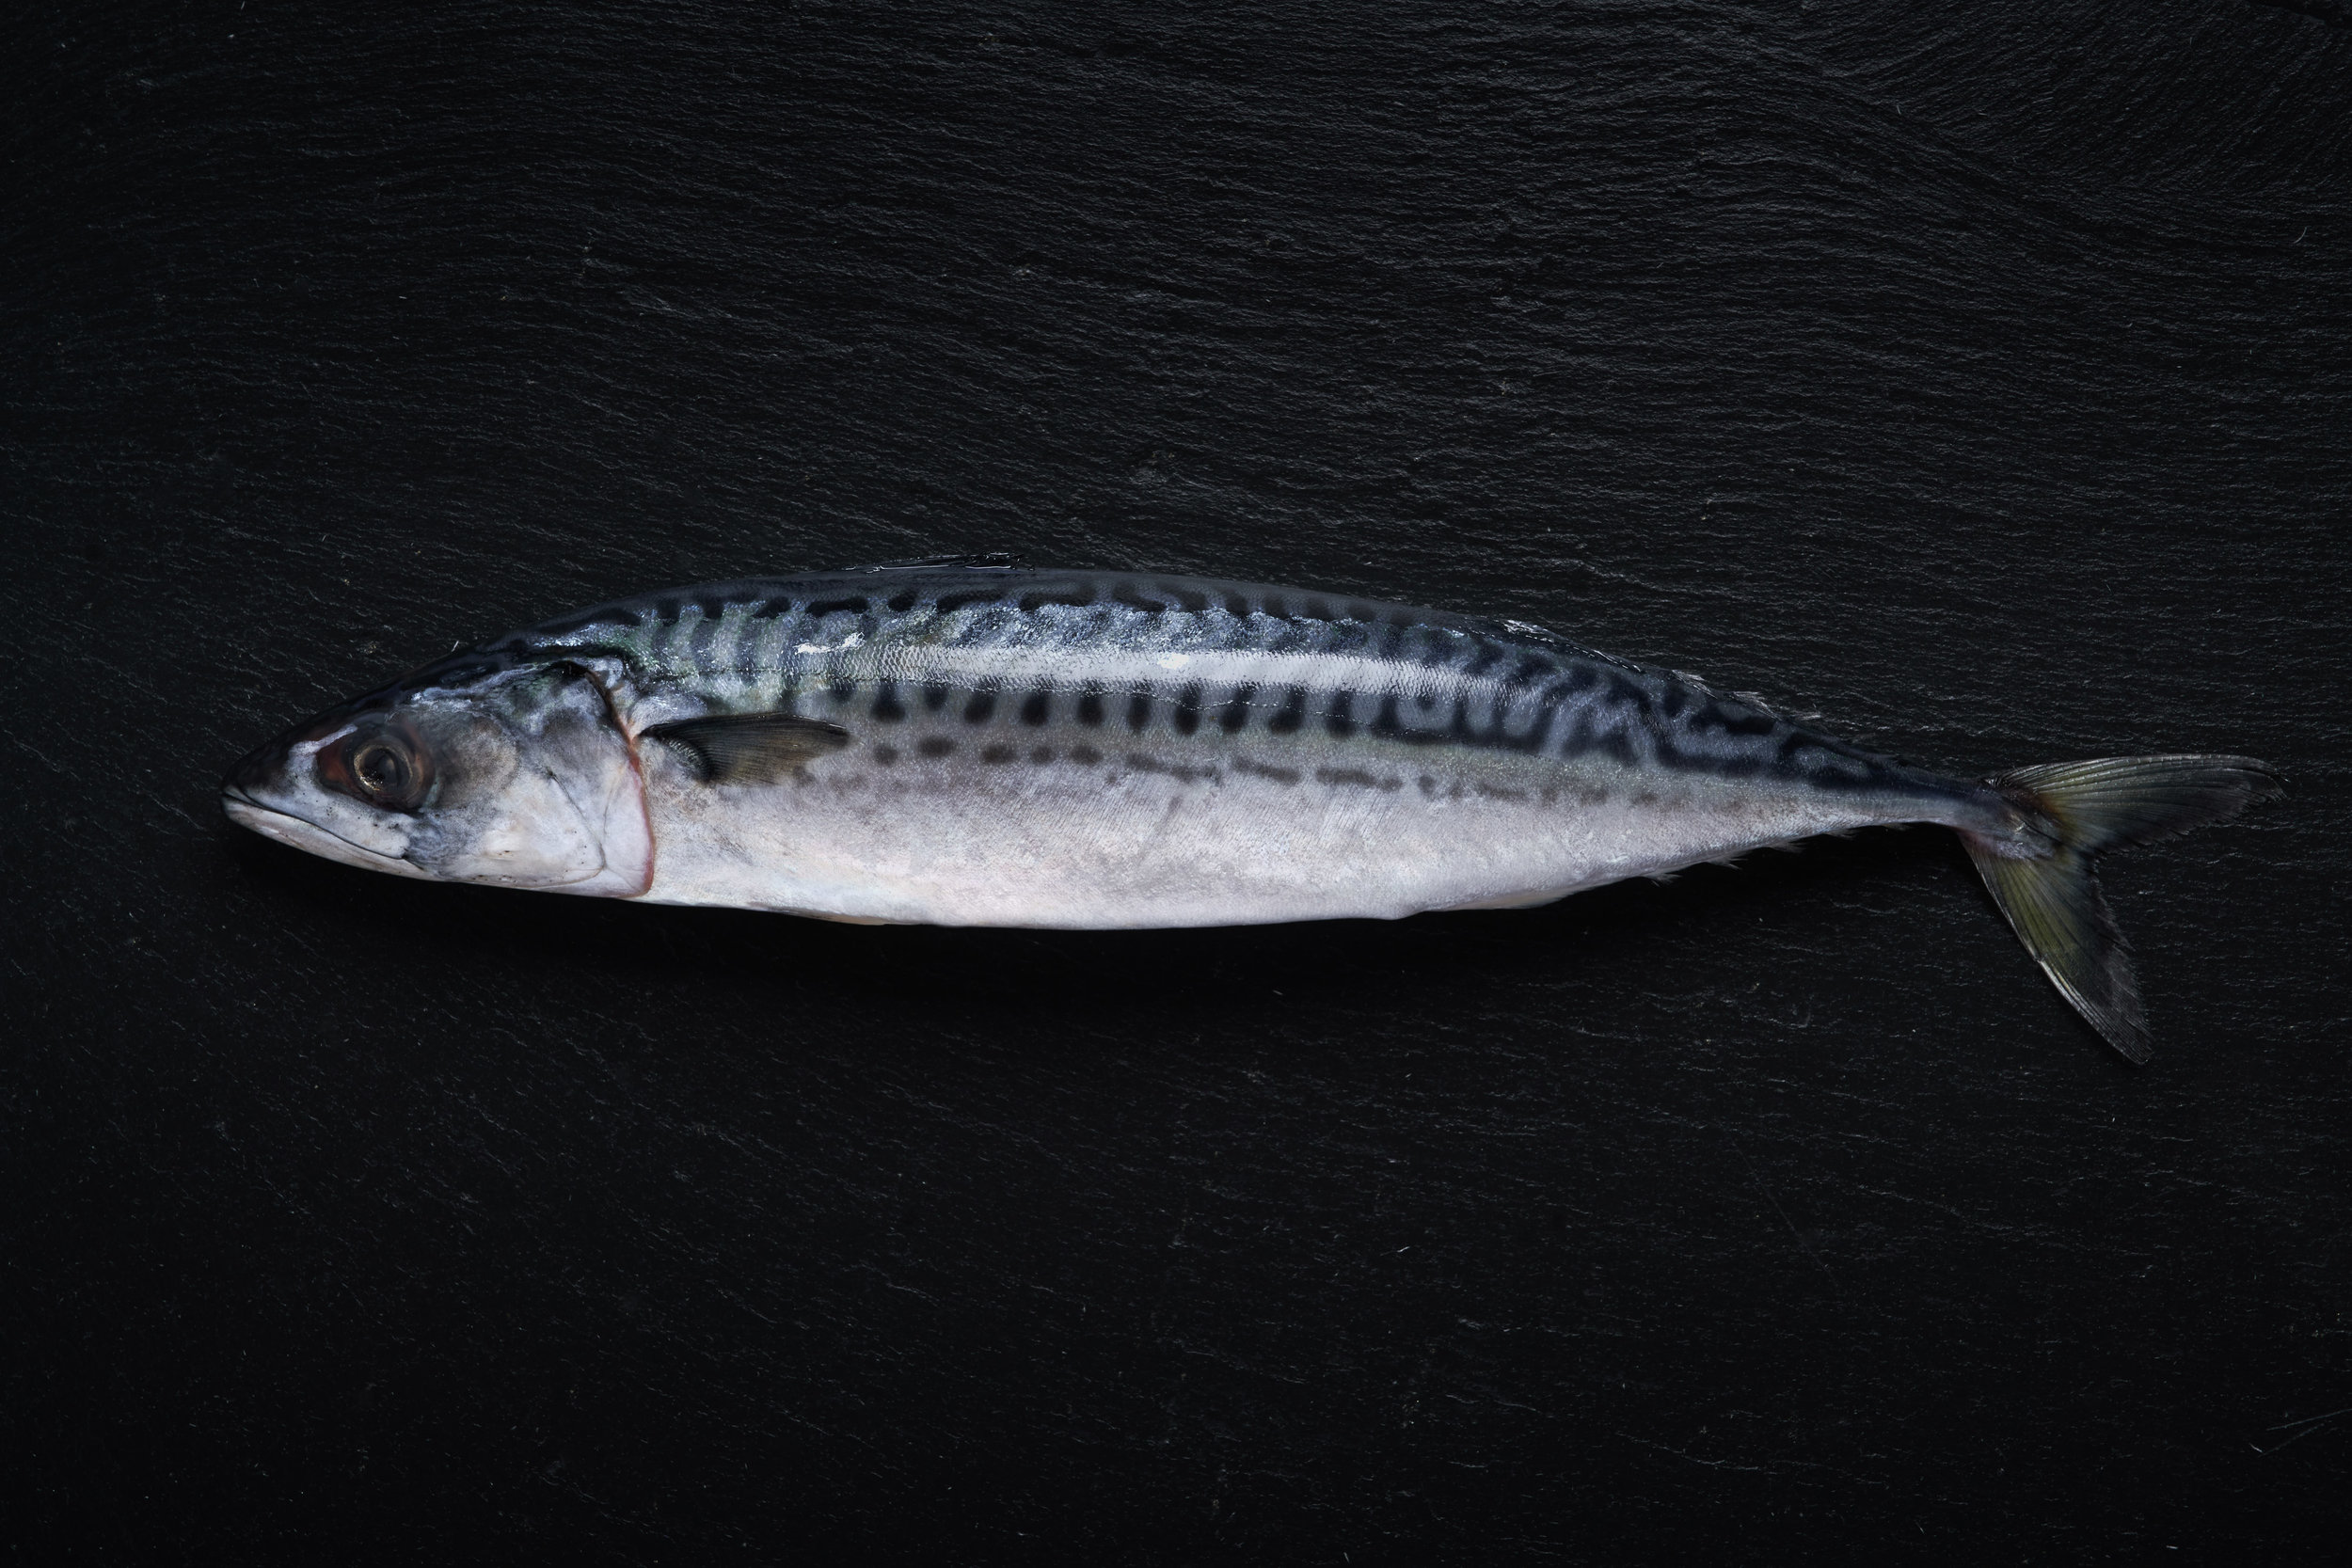 19-03-11_Mackerel_1737Website.jpg